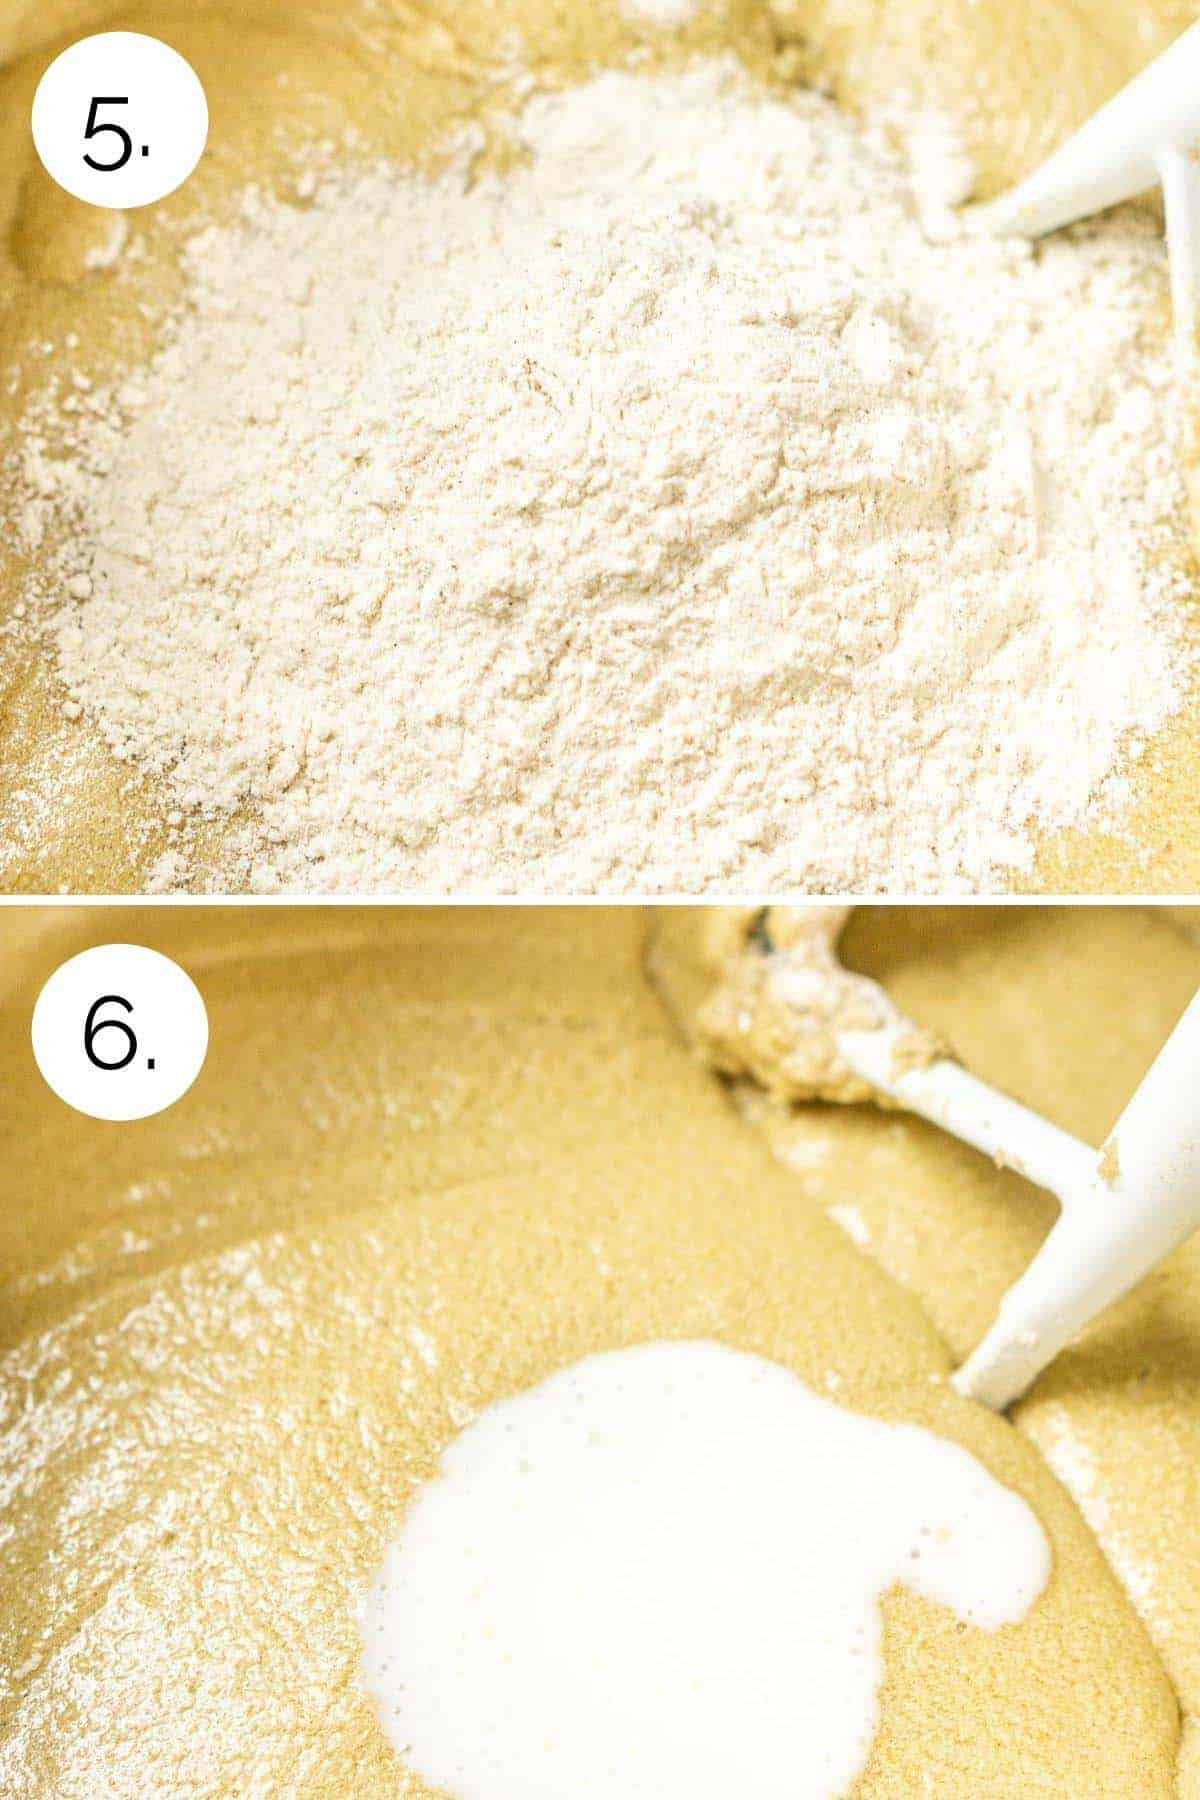 Adding the flour mixture and buttermilk in the mixing bowl to the batter.